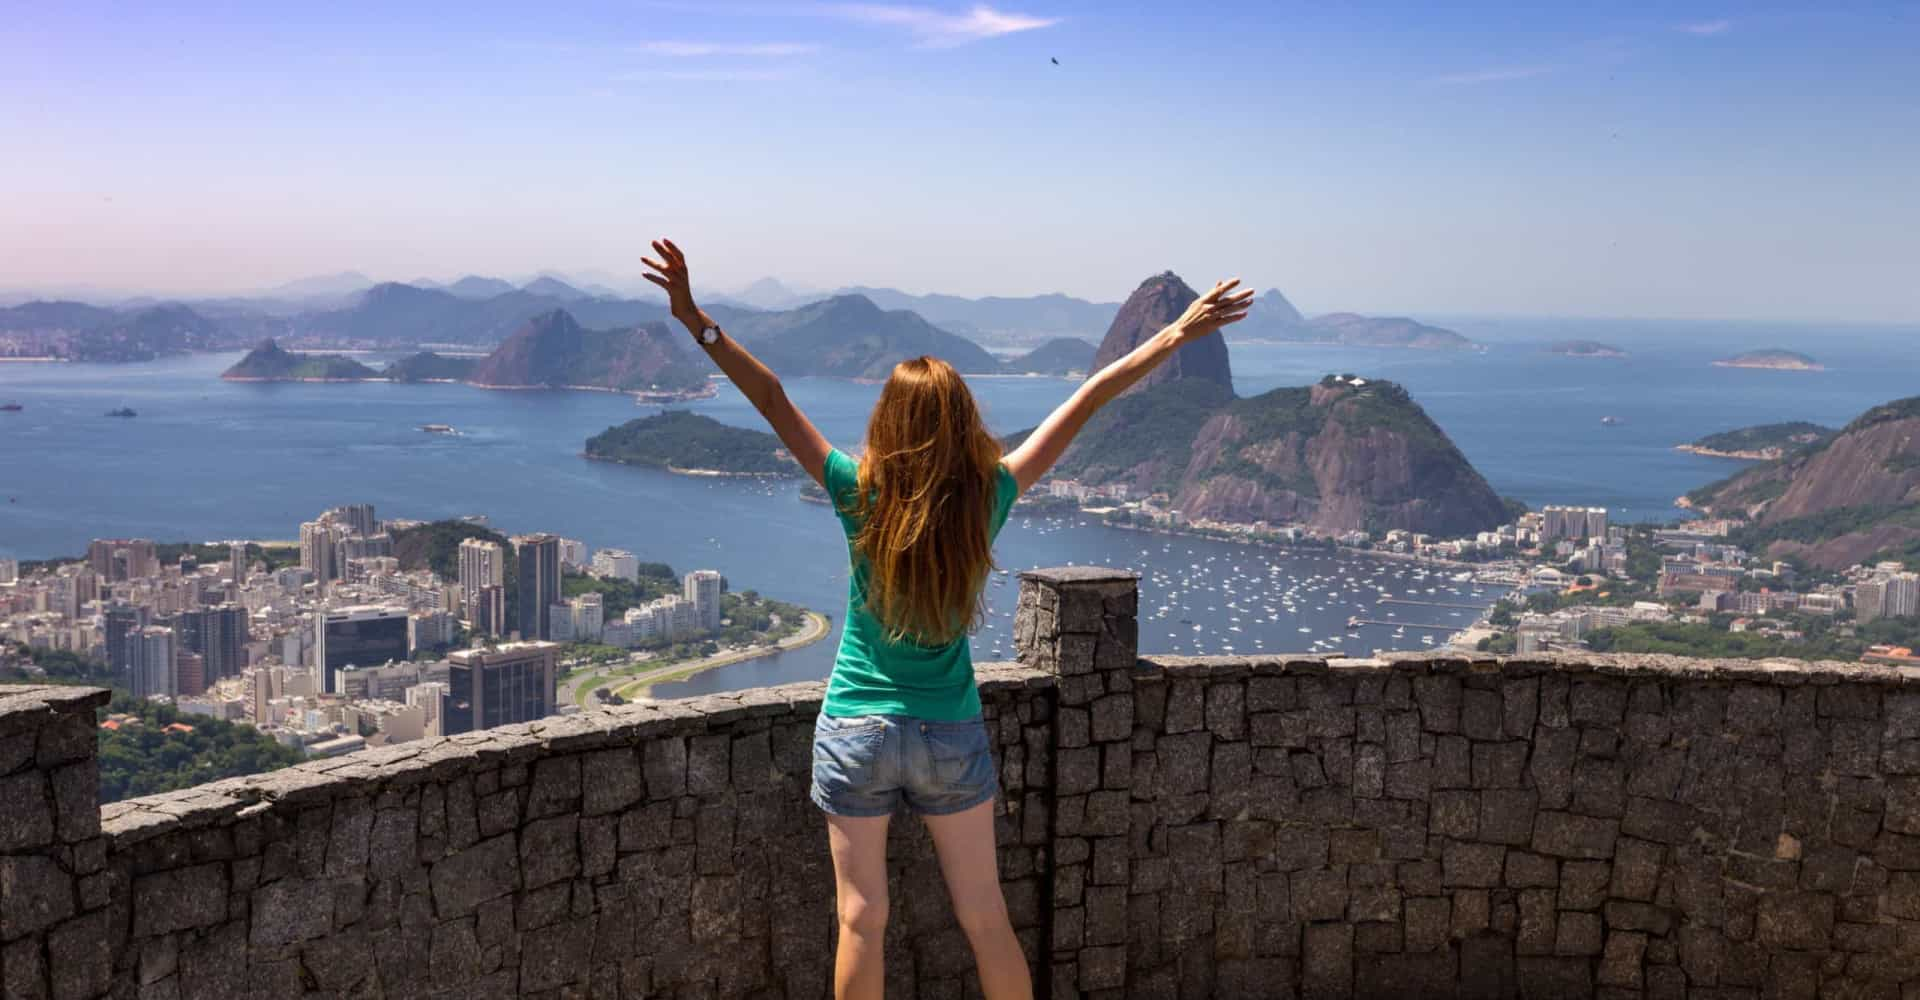 Insider Tips: Heading to Rio de Janeiro? Don't go before reading this